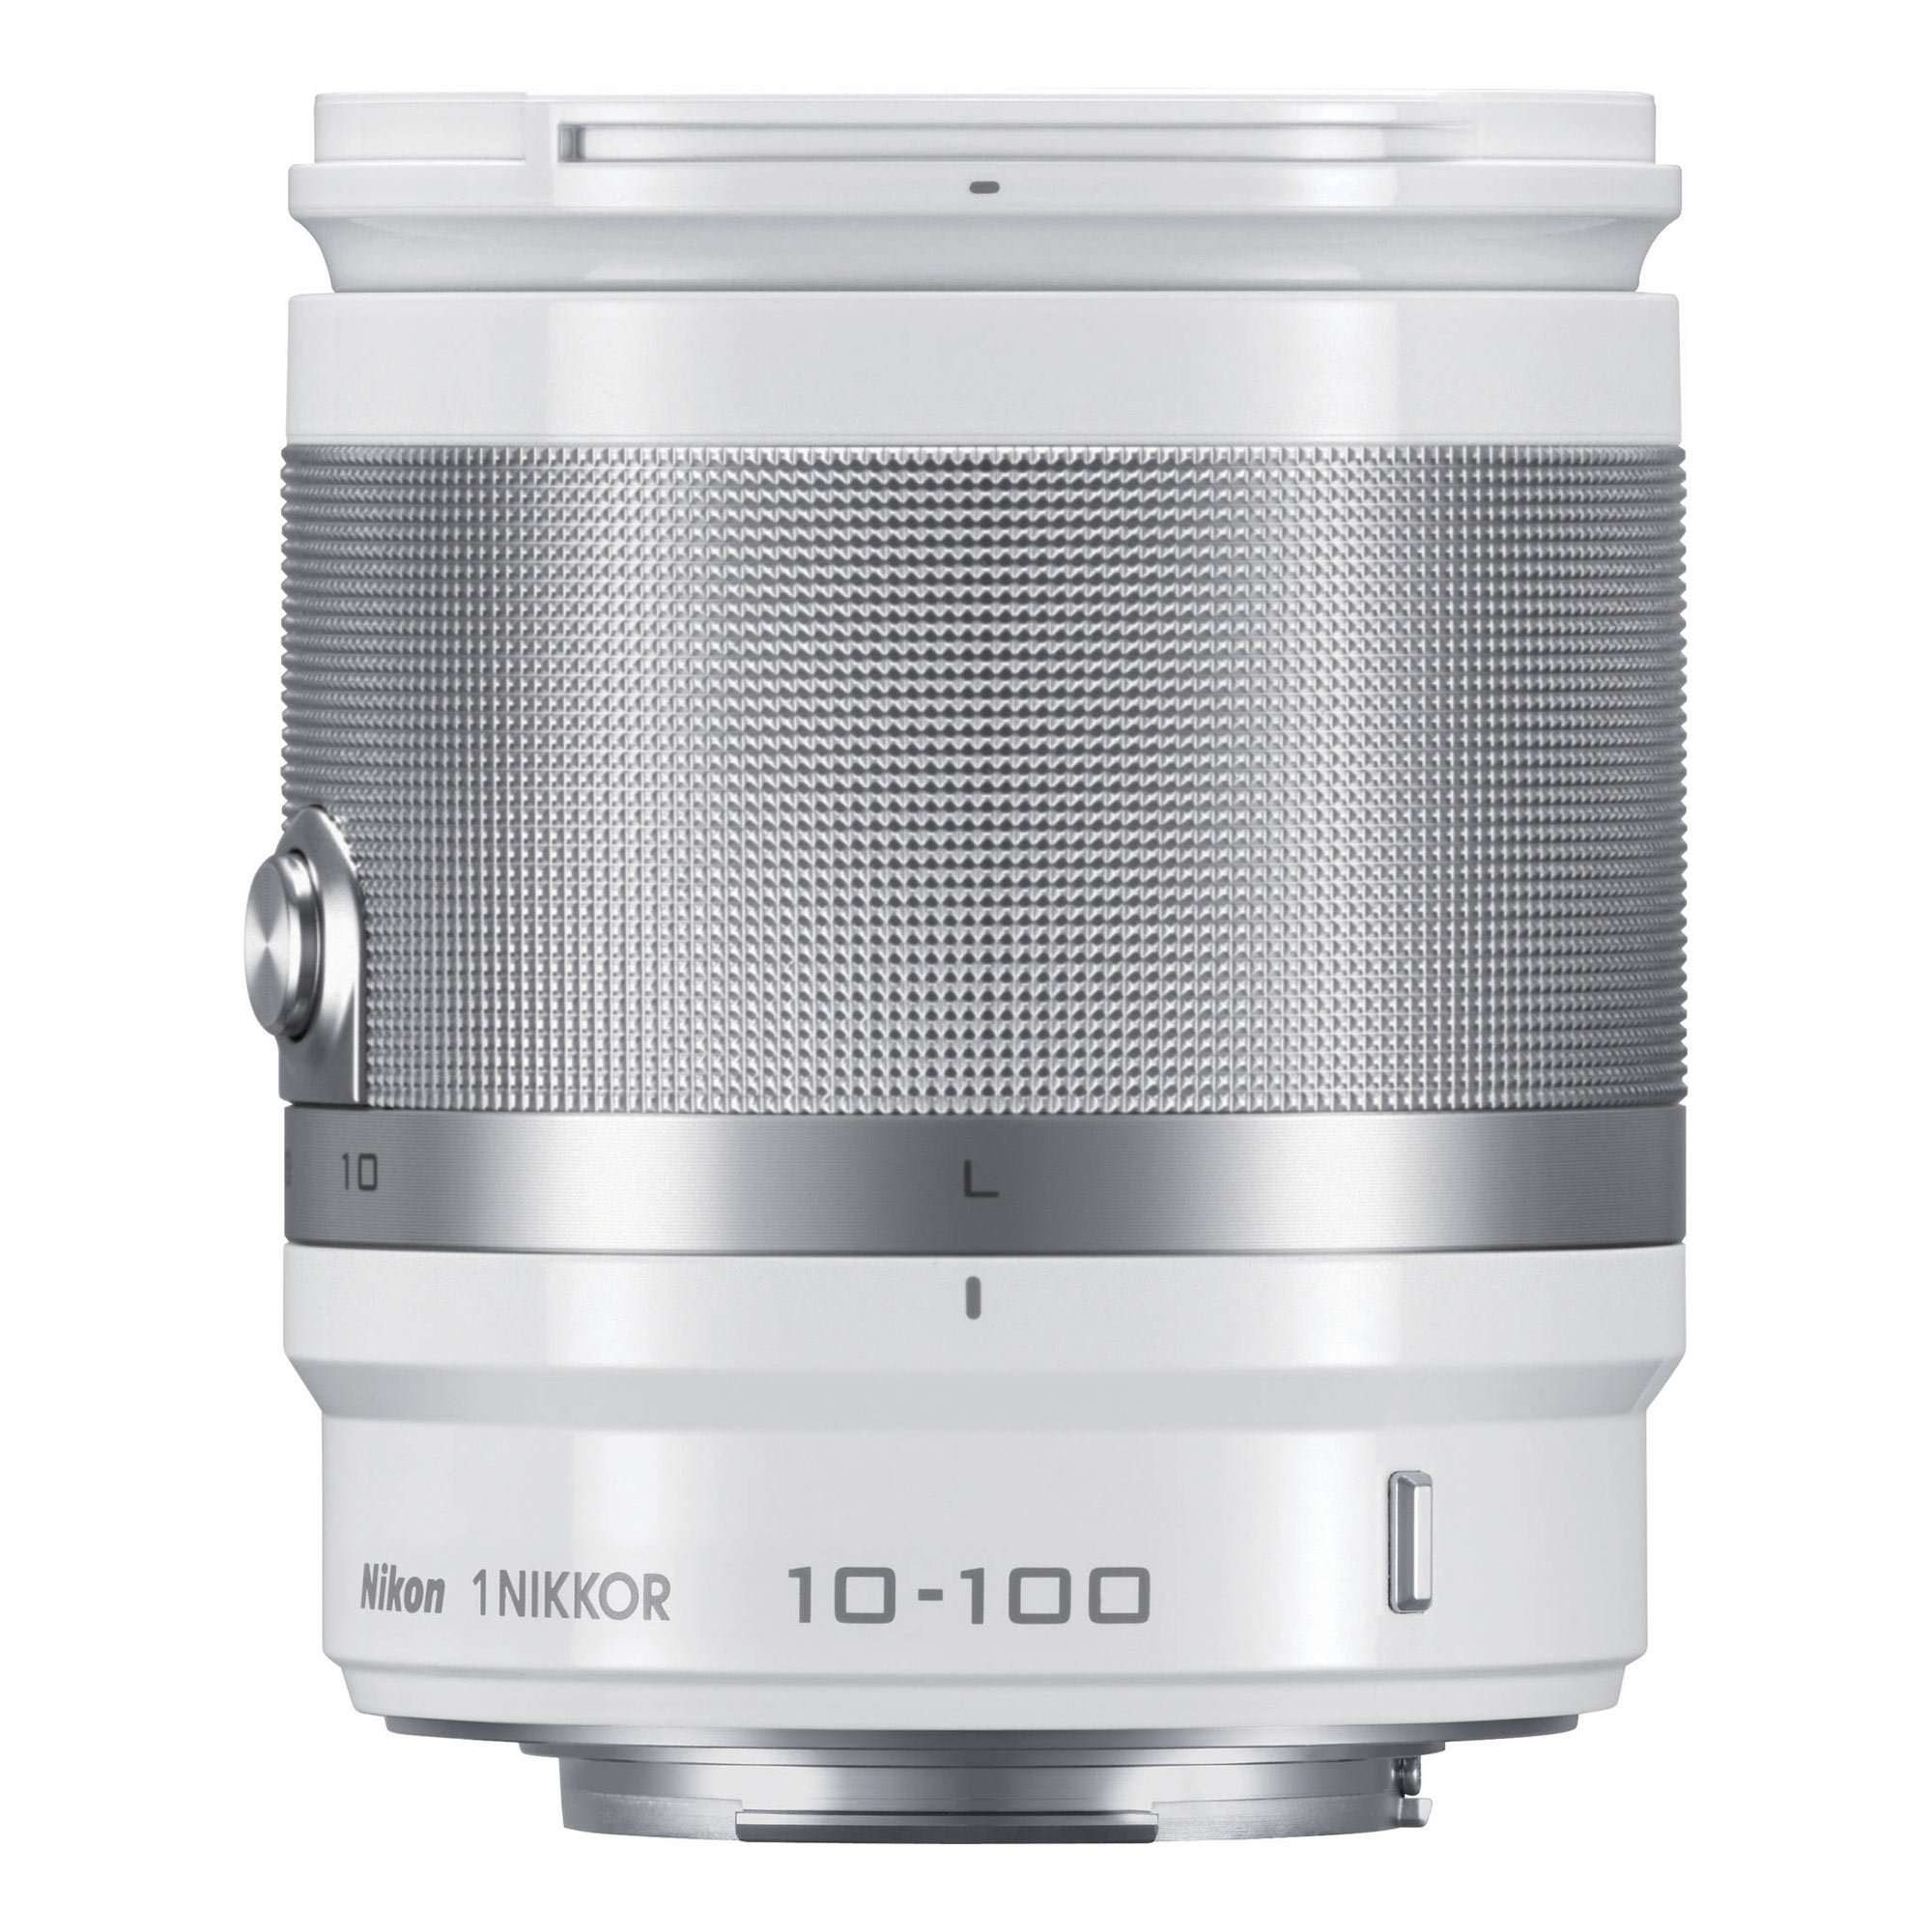 Image of Nikon 1 Nikkor 10-100mm f/4.0-5.6 VR Lens (White)